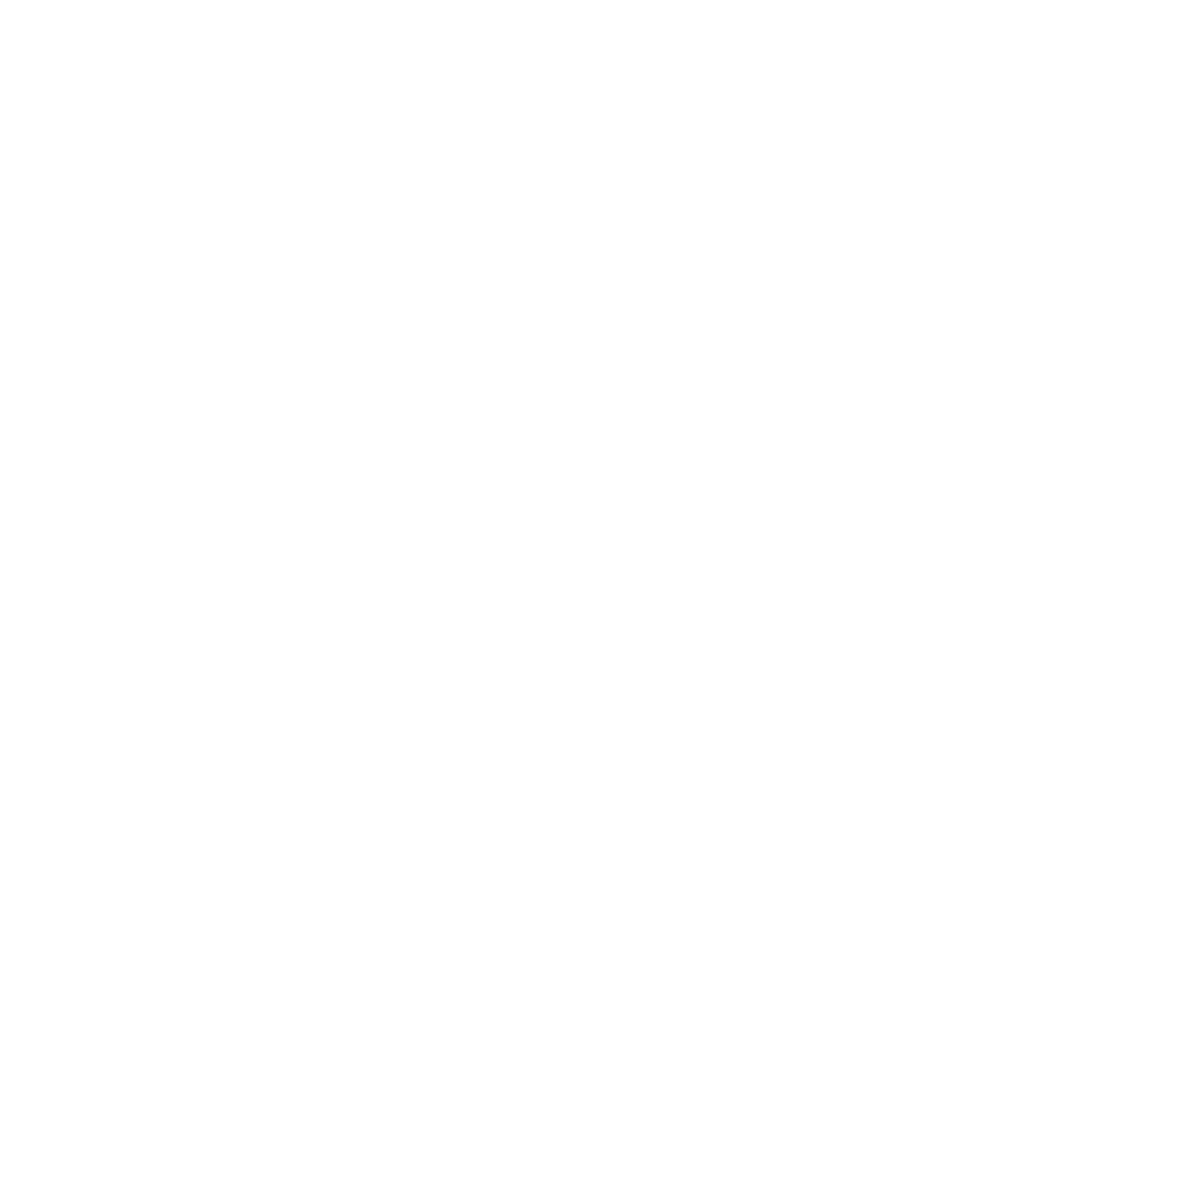 Evidence Based Optometry Pyramid